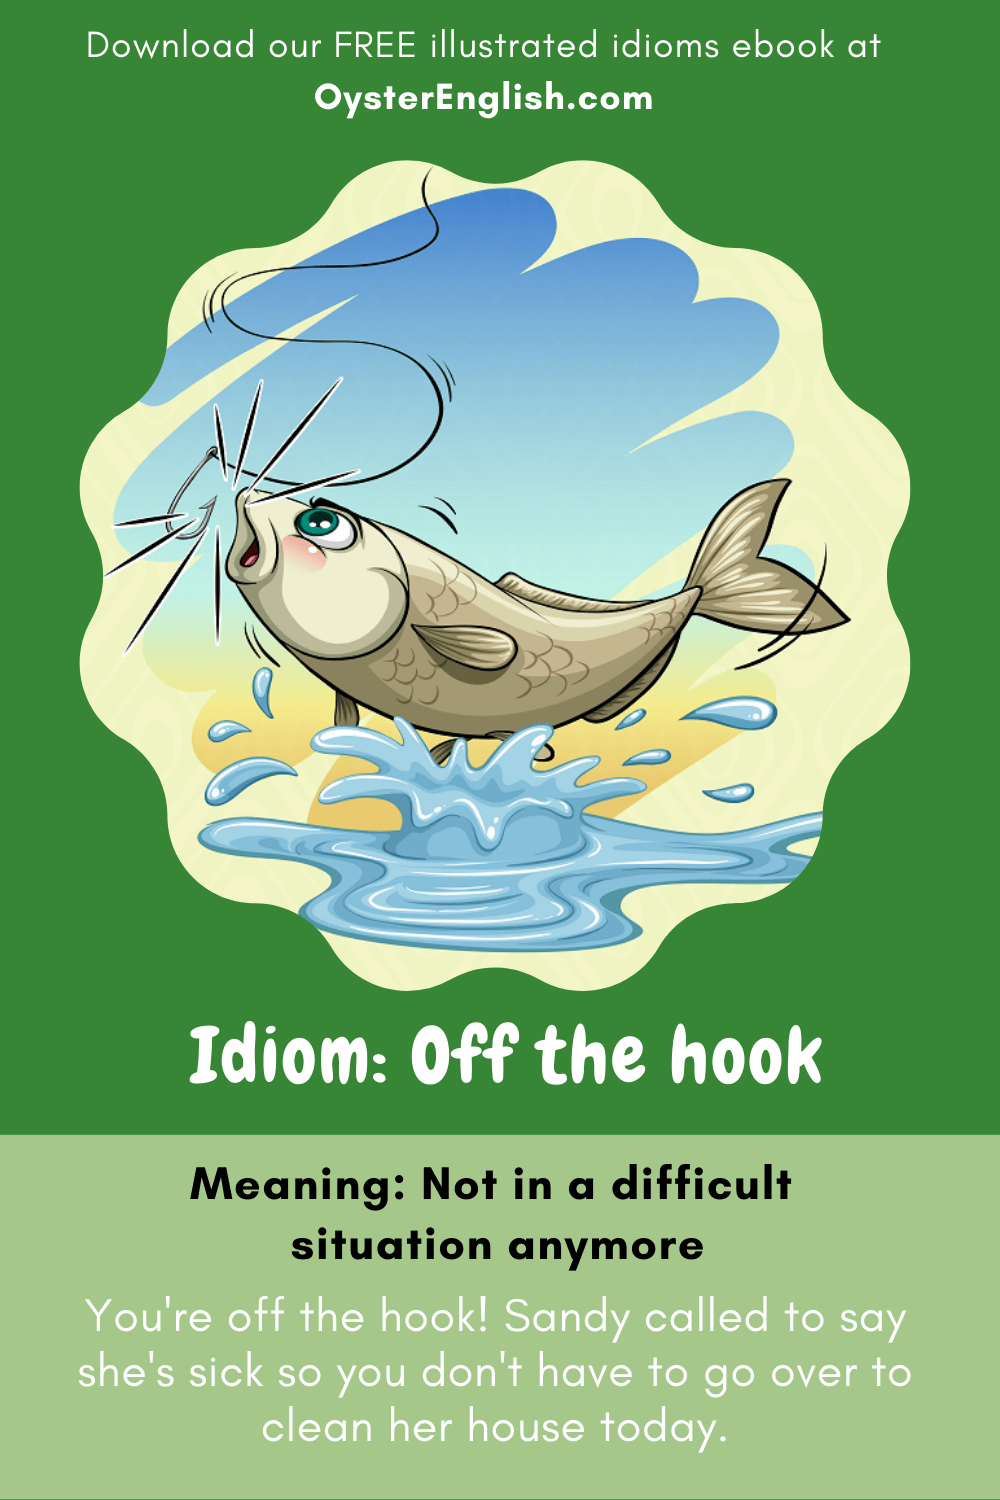 A fish escapes without biting on a fishing hook to depict the idiom